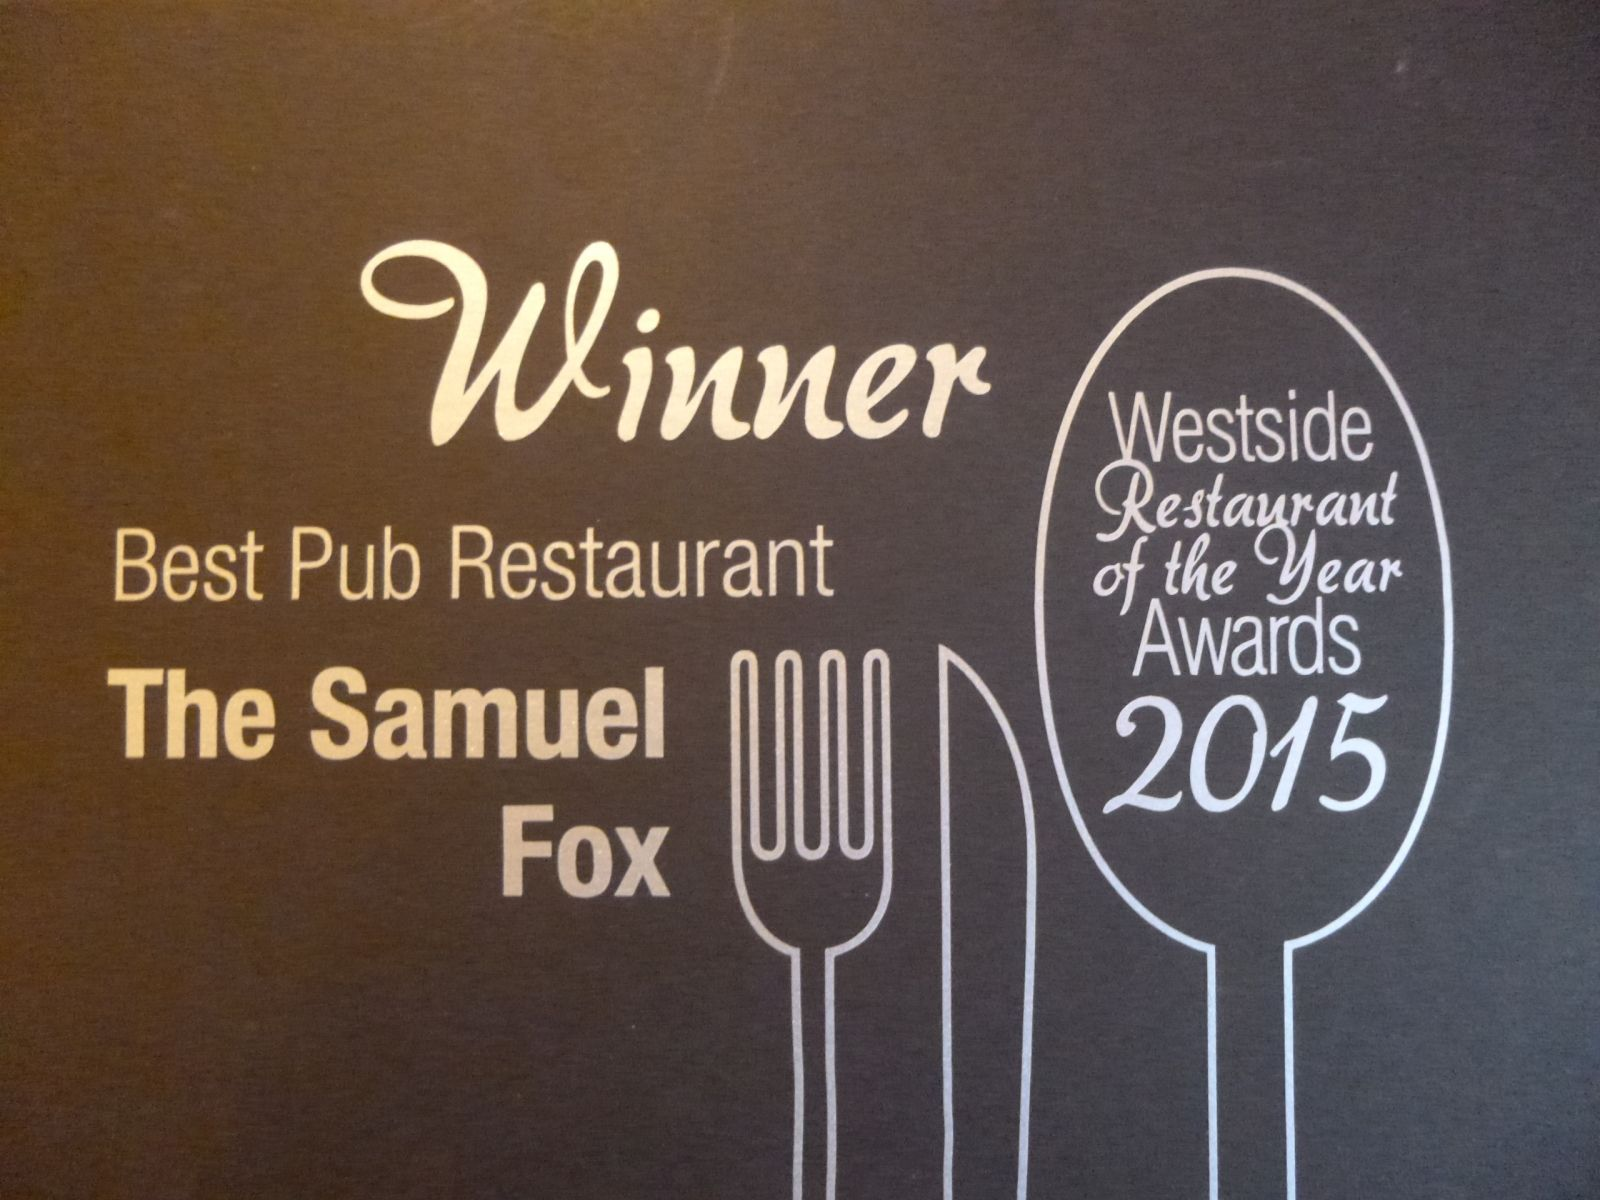 Sheffield Westside Best Pub Restaurant